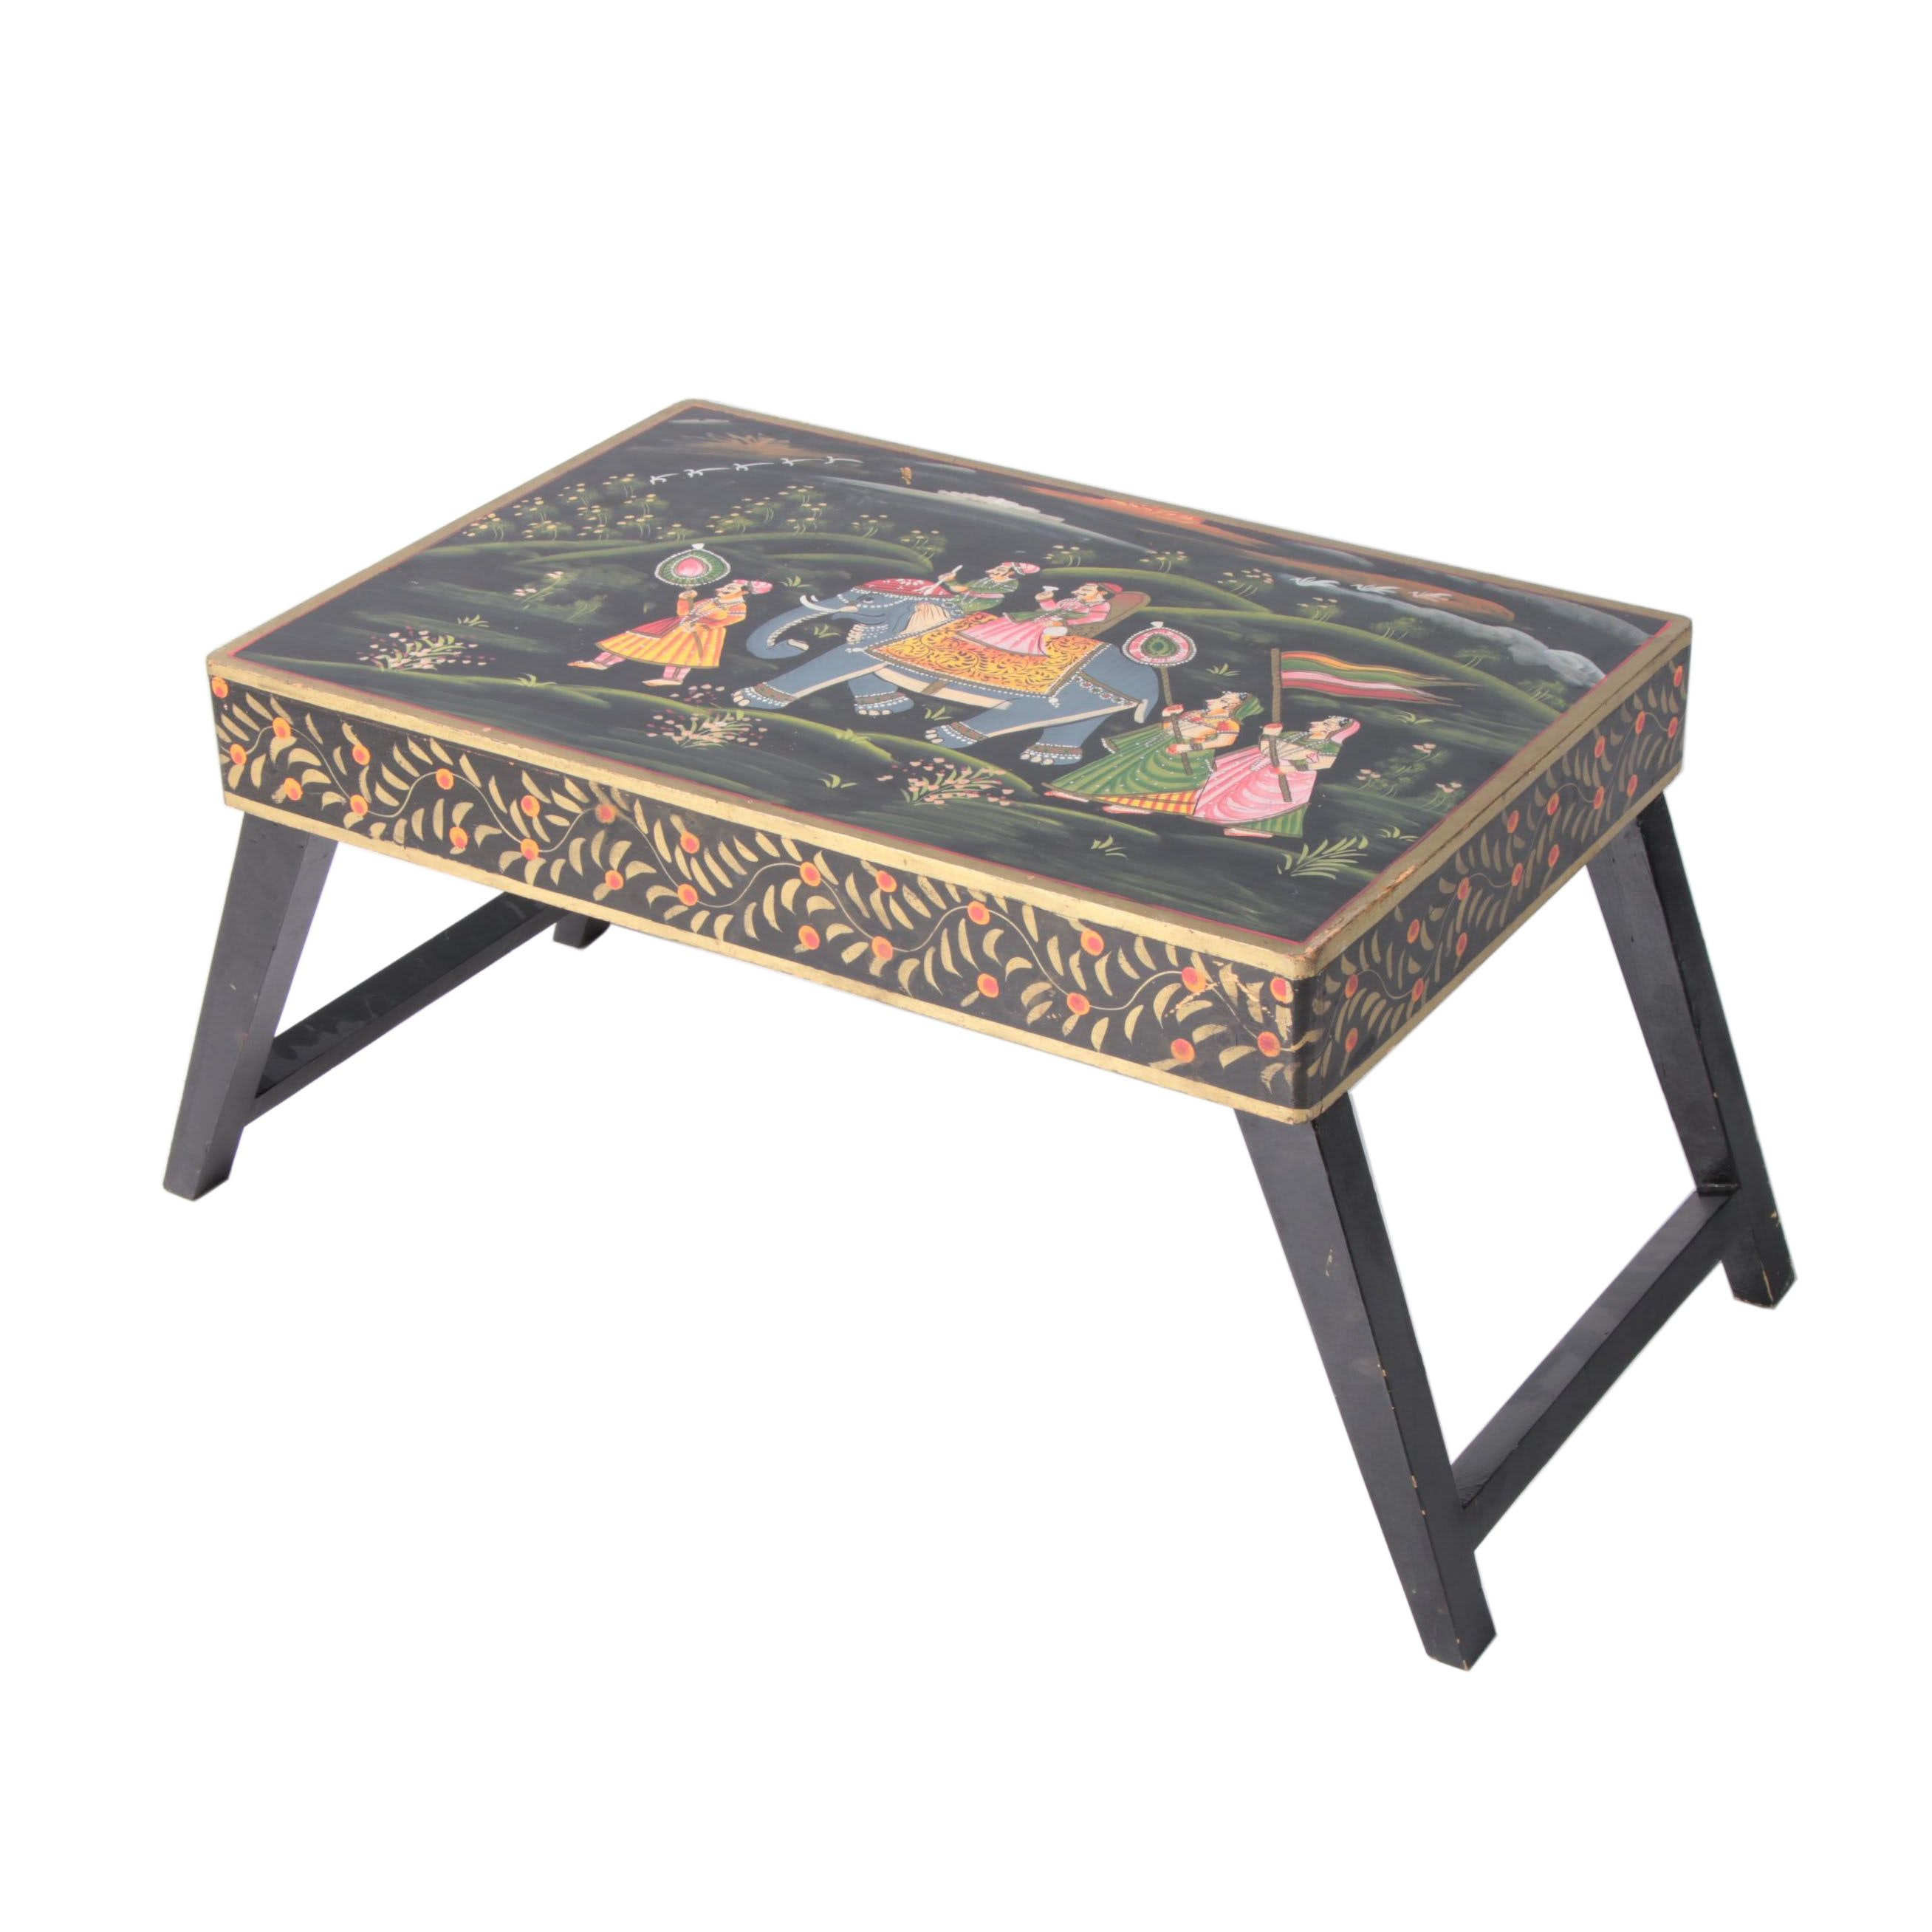 Hand-Painted South Asian Style Wooden Folding Table